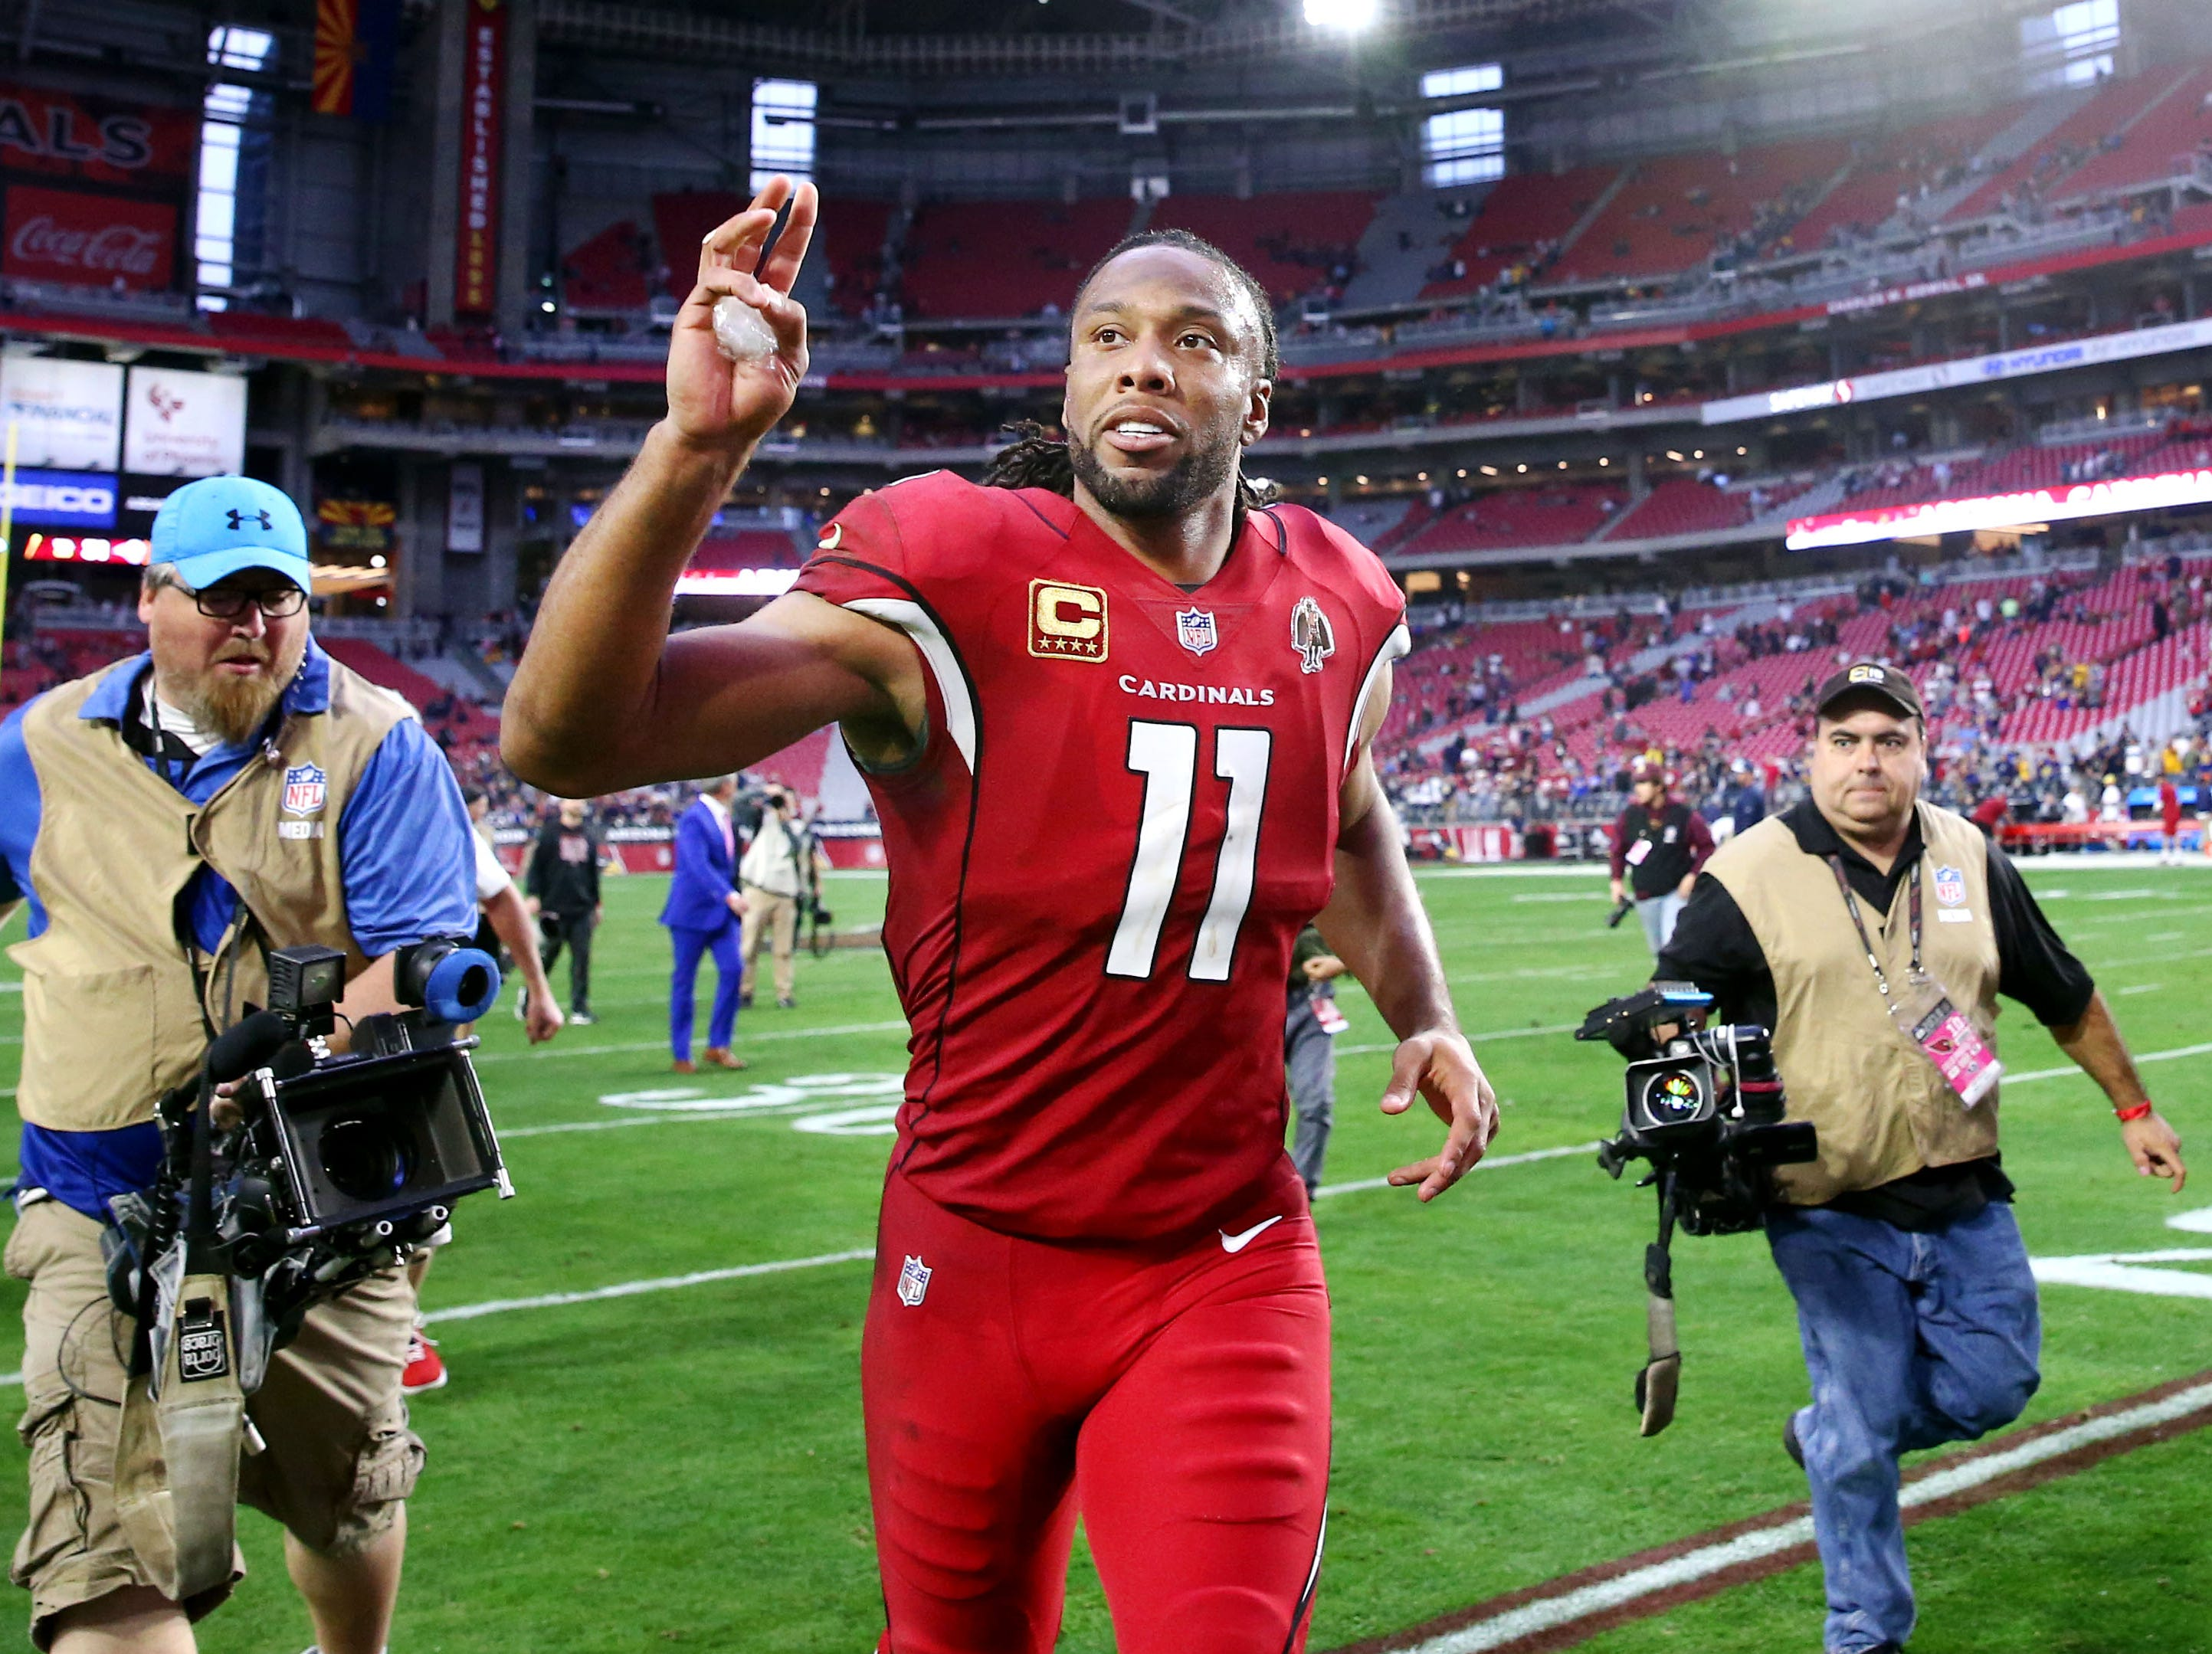 Arizona Cardinals wide receiver Larry Fitzgerald waves to the fans after their 31-9 loss to the Los Angeles Rams on Dec. 23 at State Farm Stadium.